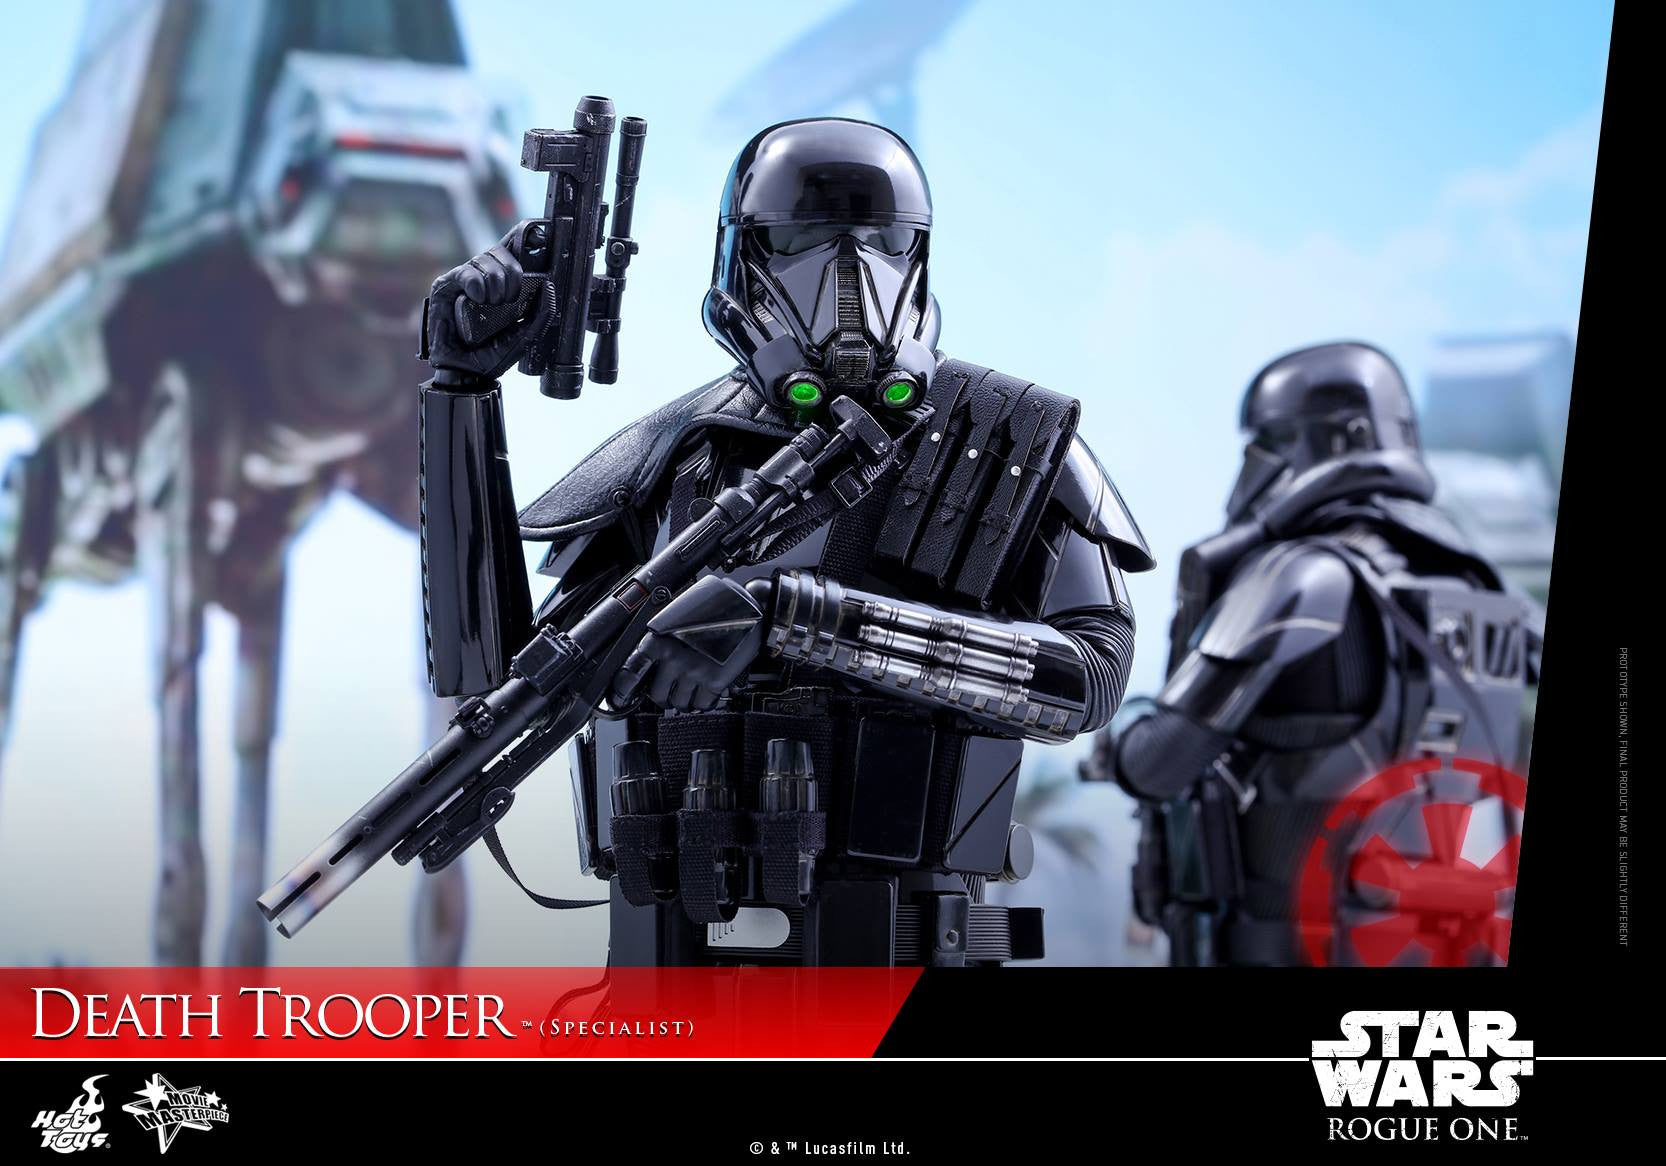 Hot Toys - MMS385 - Rogue One: A Star Wars Story - Death Trooper (Specialist) - Marvelous Toys - 15